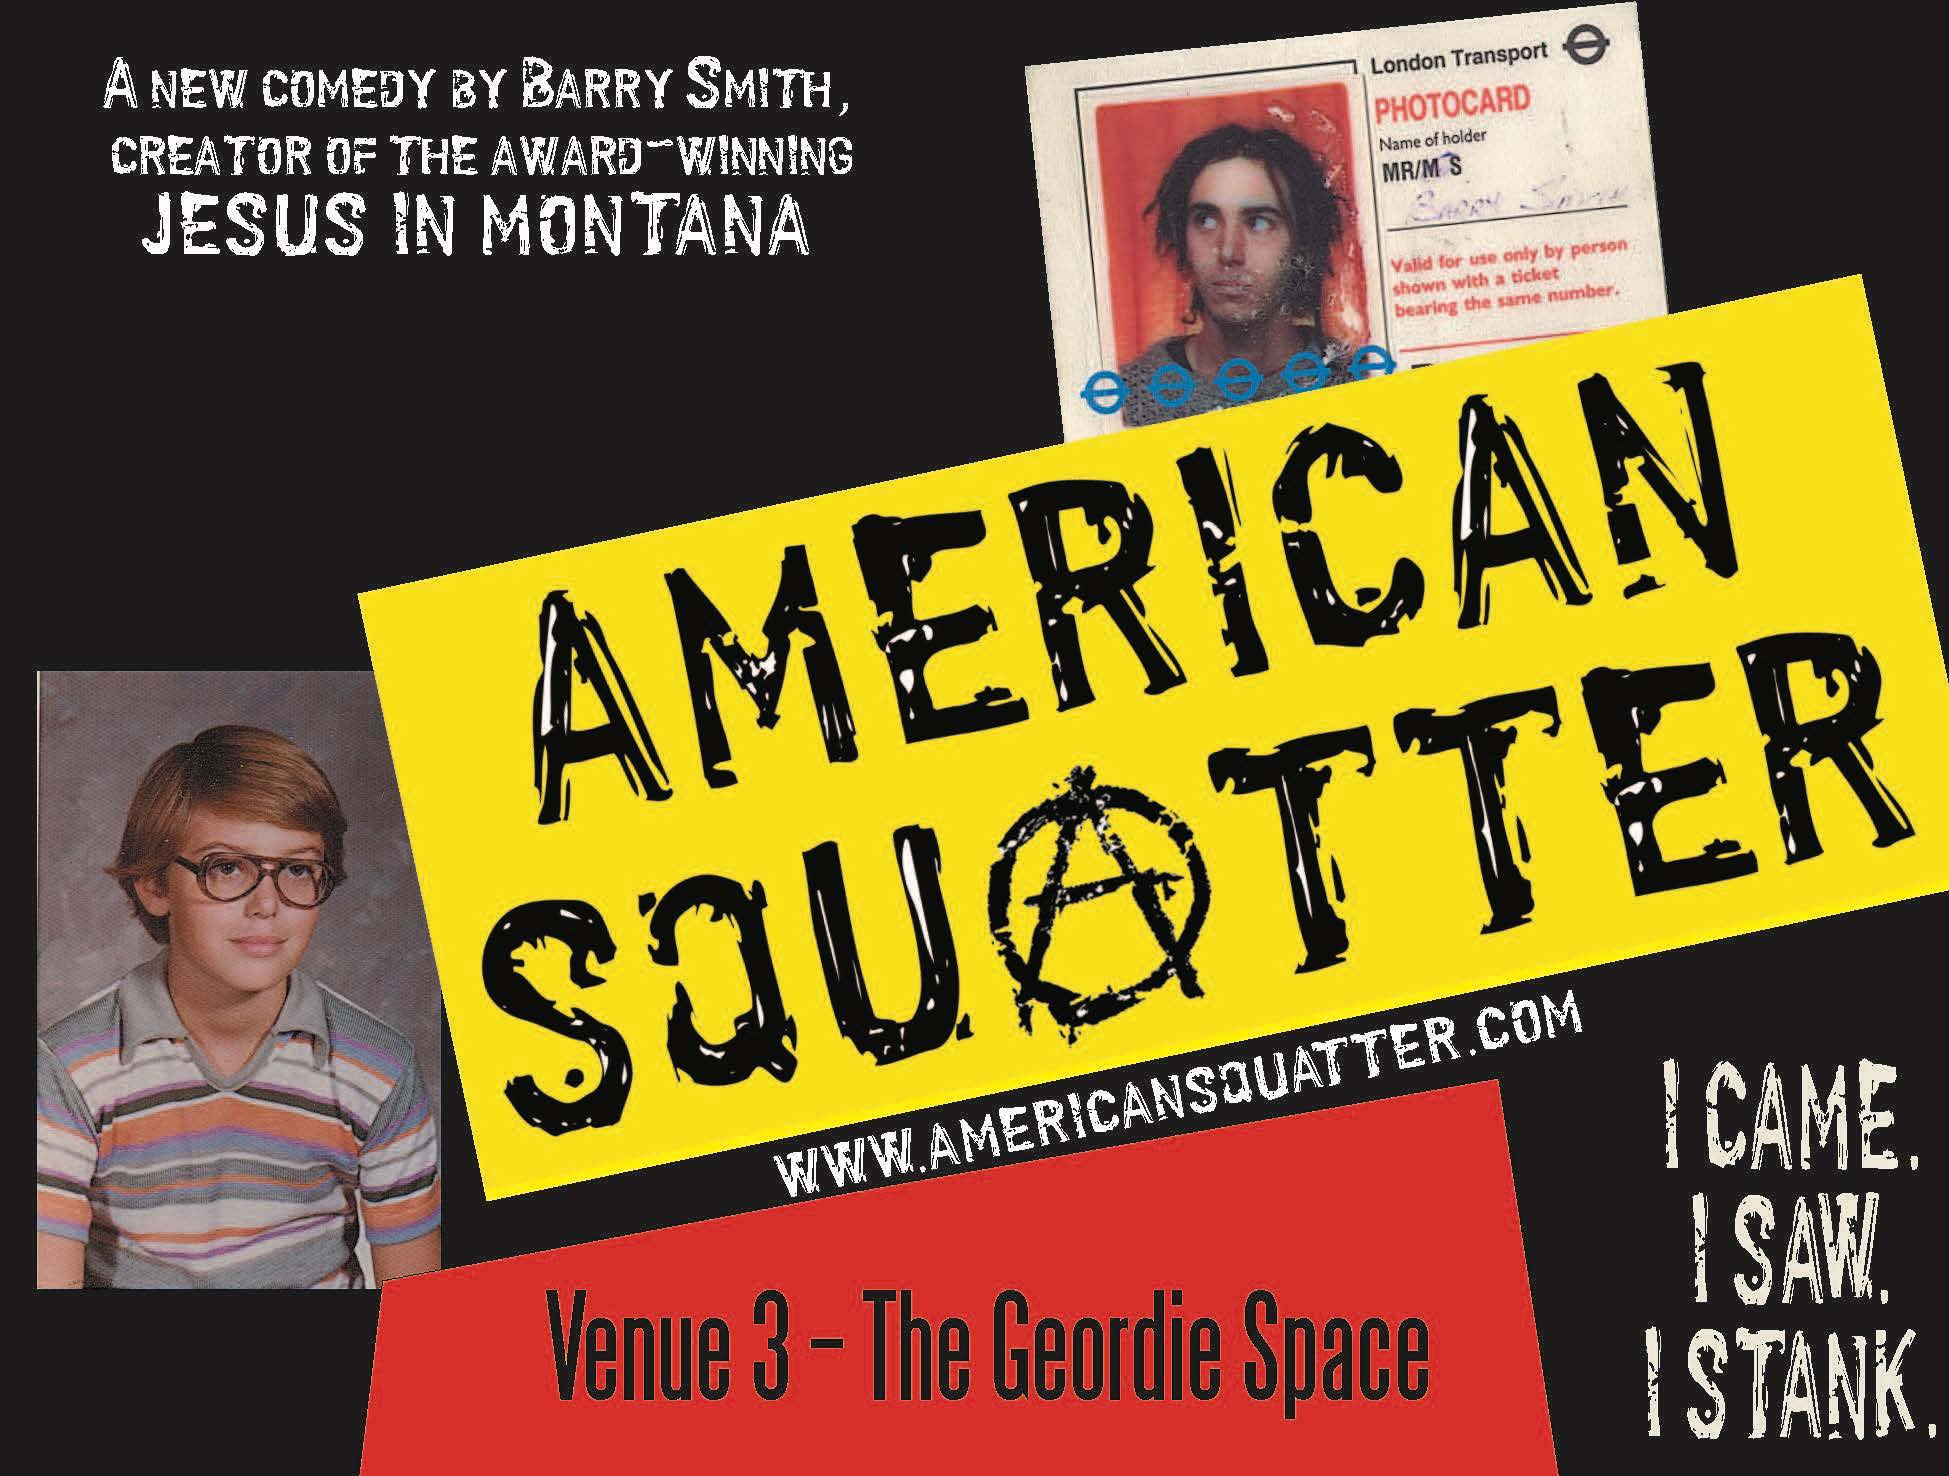 """A show postcard for American Squatter with two photos of the performer, Barry Smith, as a cleancut adolescent and as a squatter in London. The Tagline in white type says """"I came. I saw. I stank."""""""